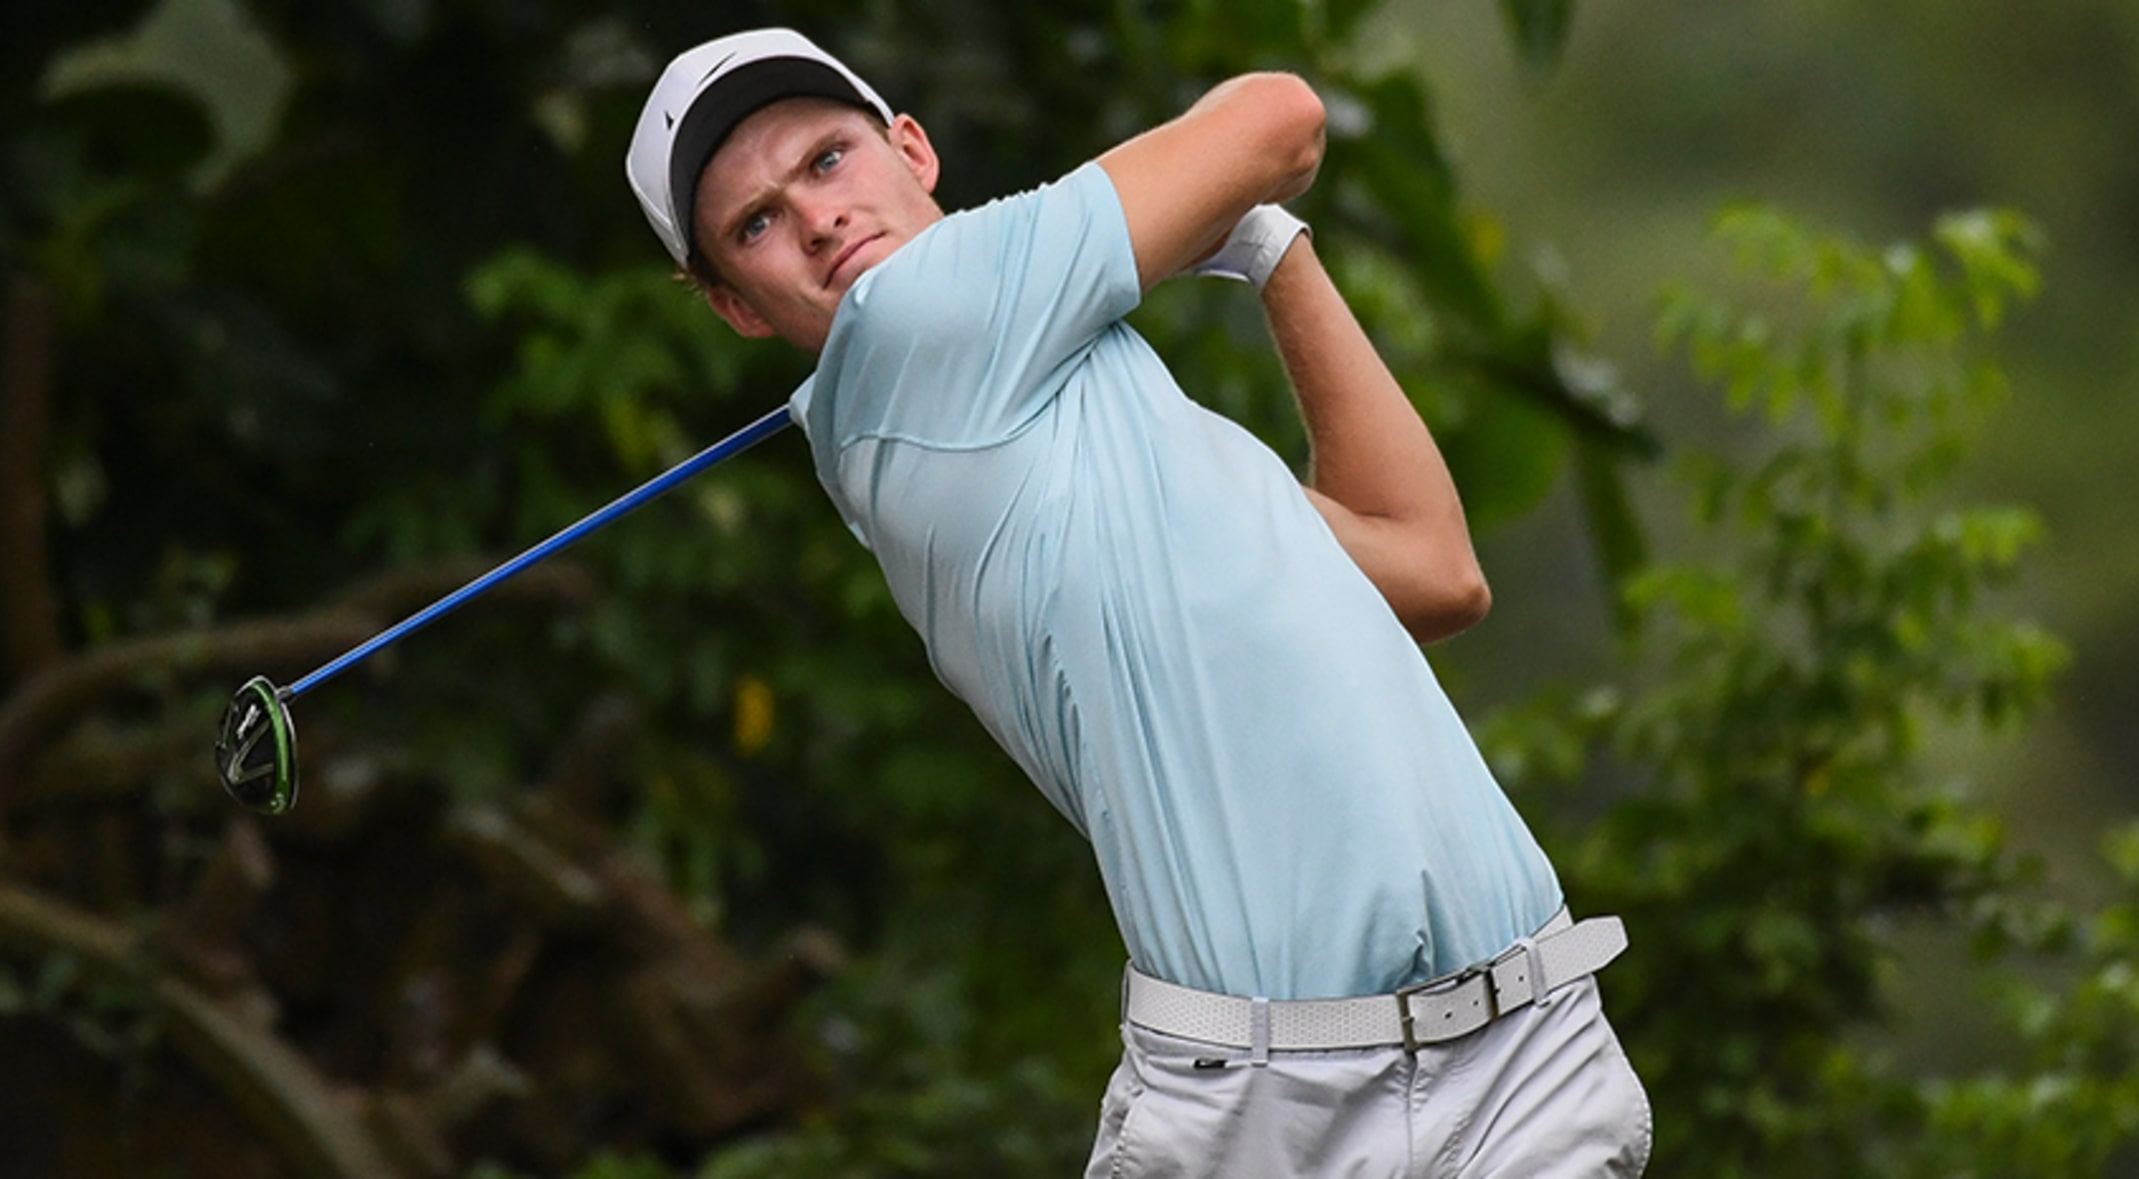 Pga Tour Latin America Q School 2020 Five to watch at Mackenzie Tour Q School